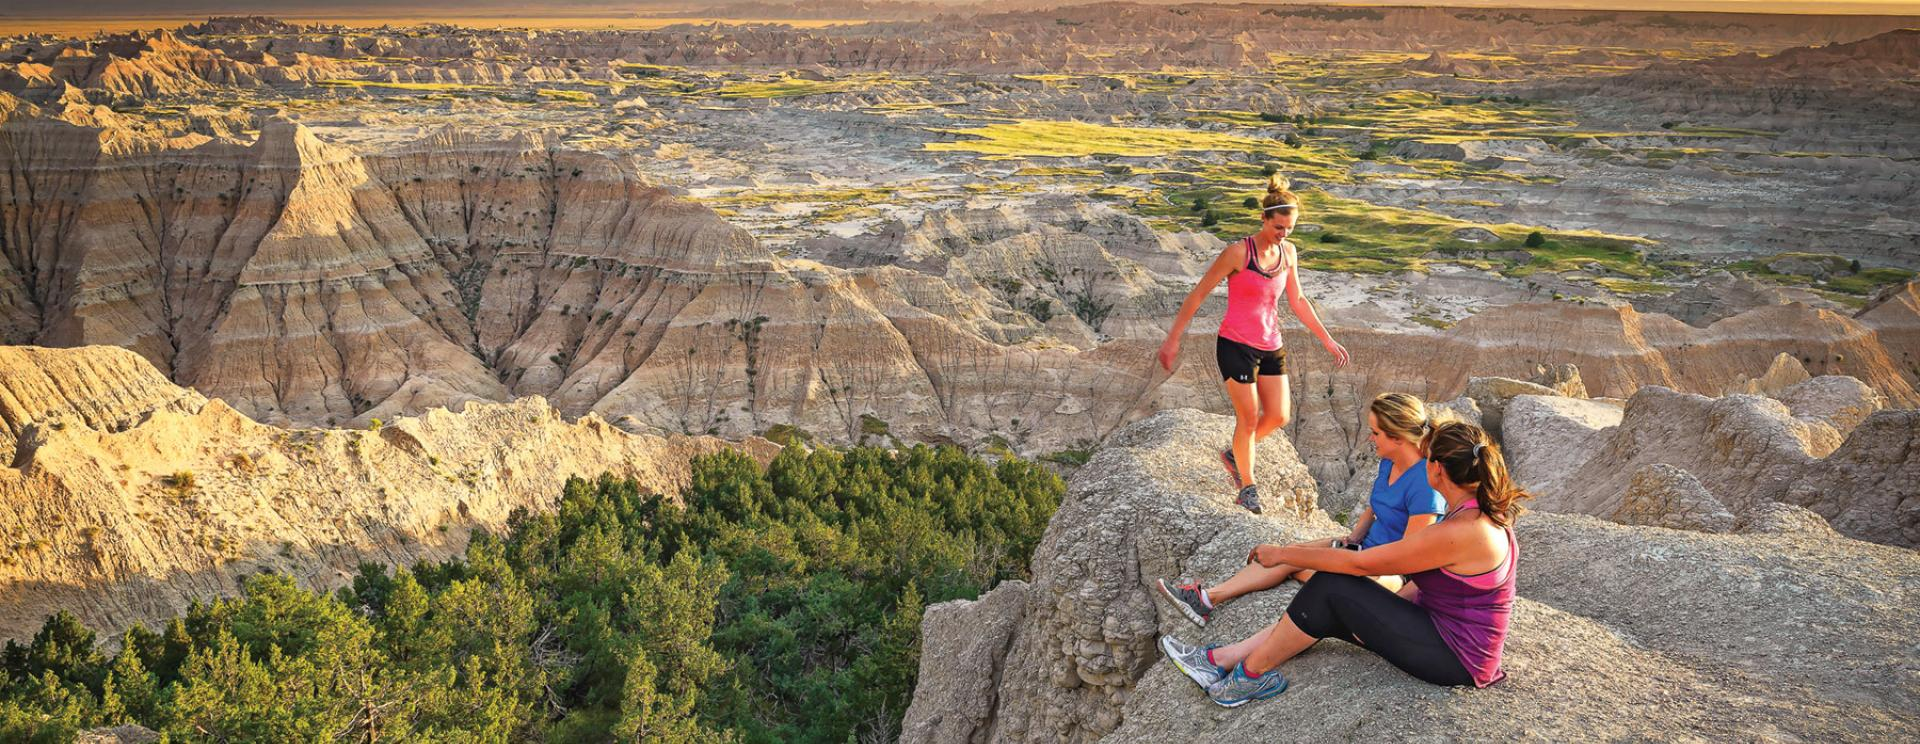 How to Spend 3 Absolutely Amazing Days in the Wall Badlands Area   Itinerary